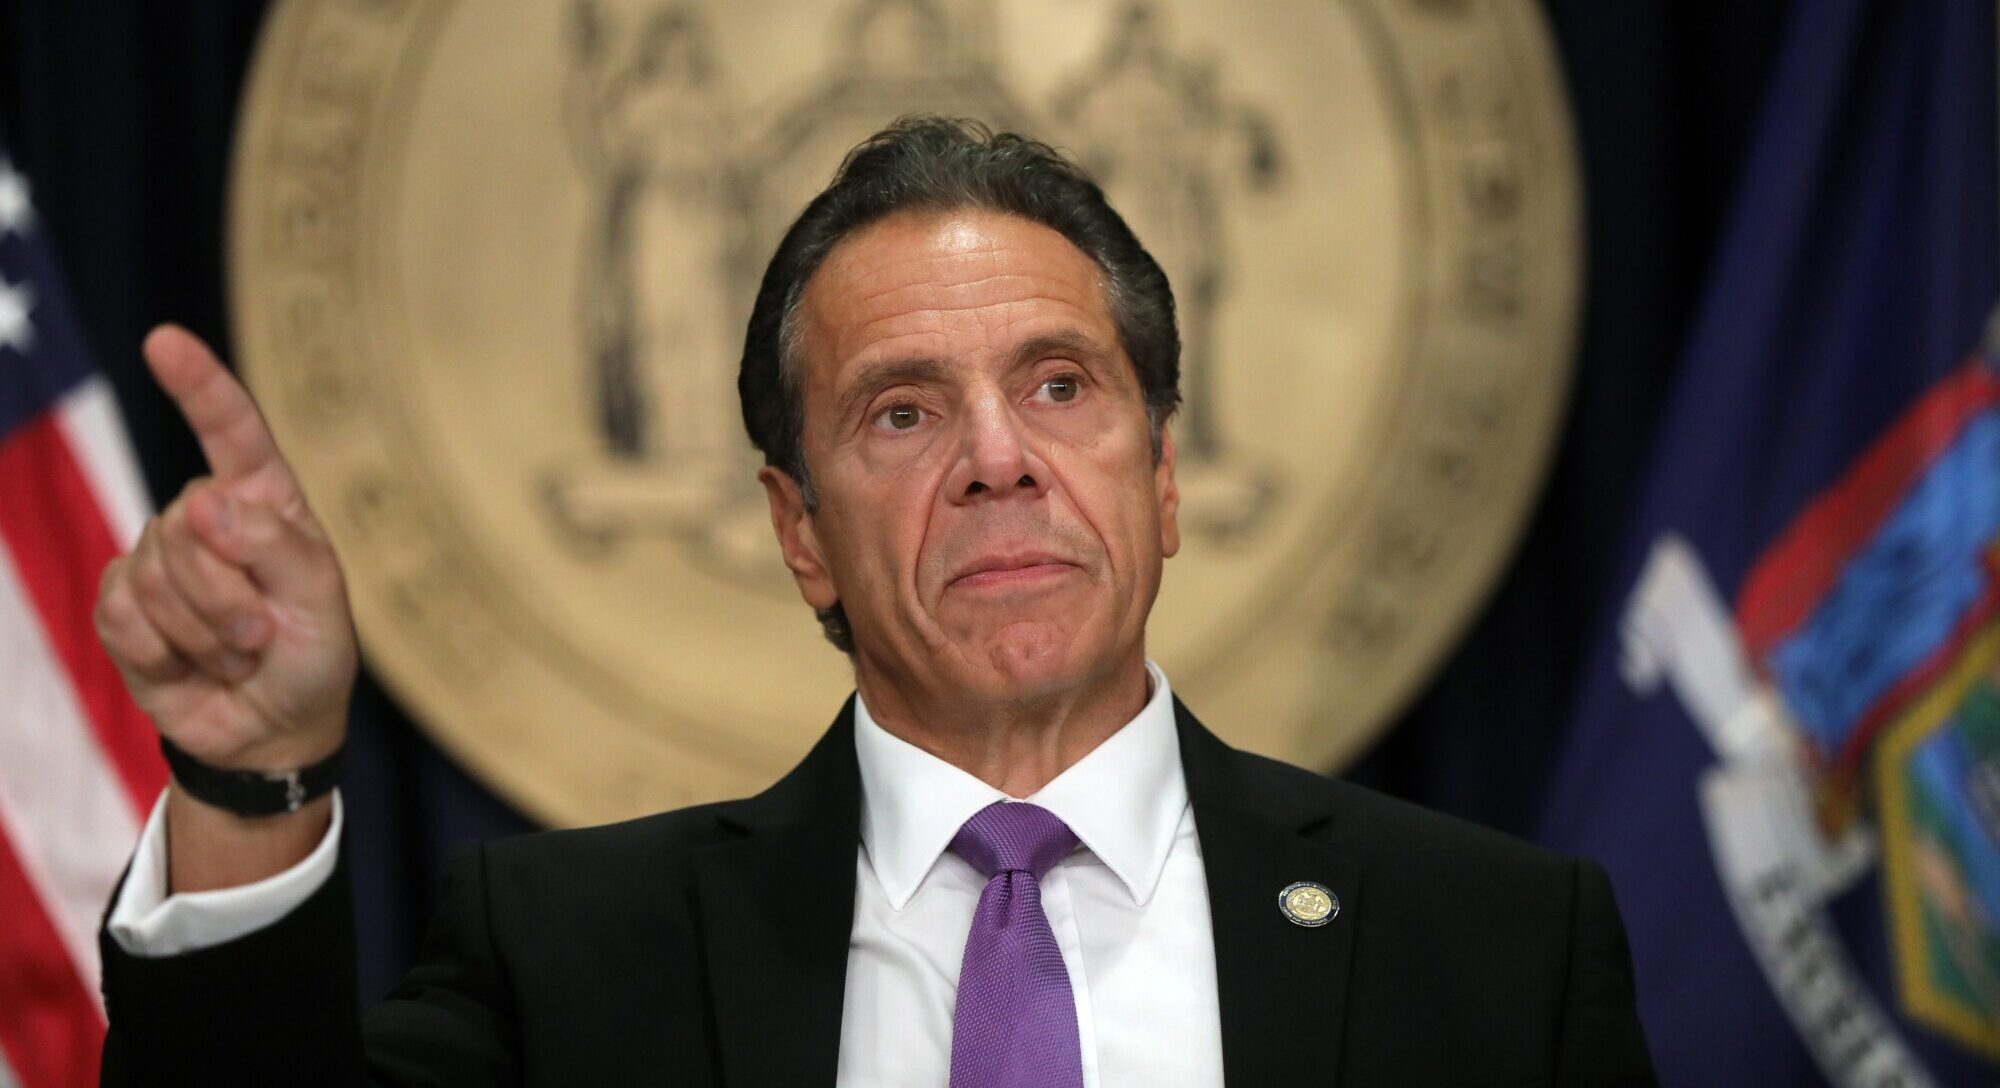 New York Governor Andrew Cuomo Is Not Resigning